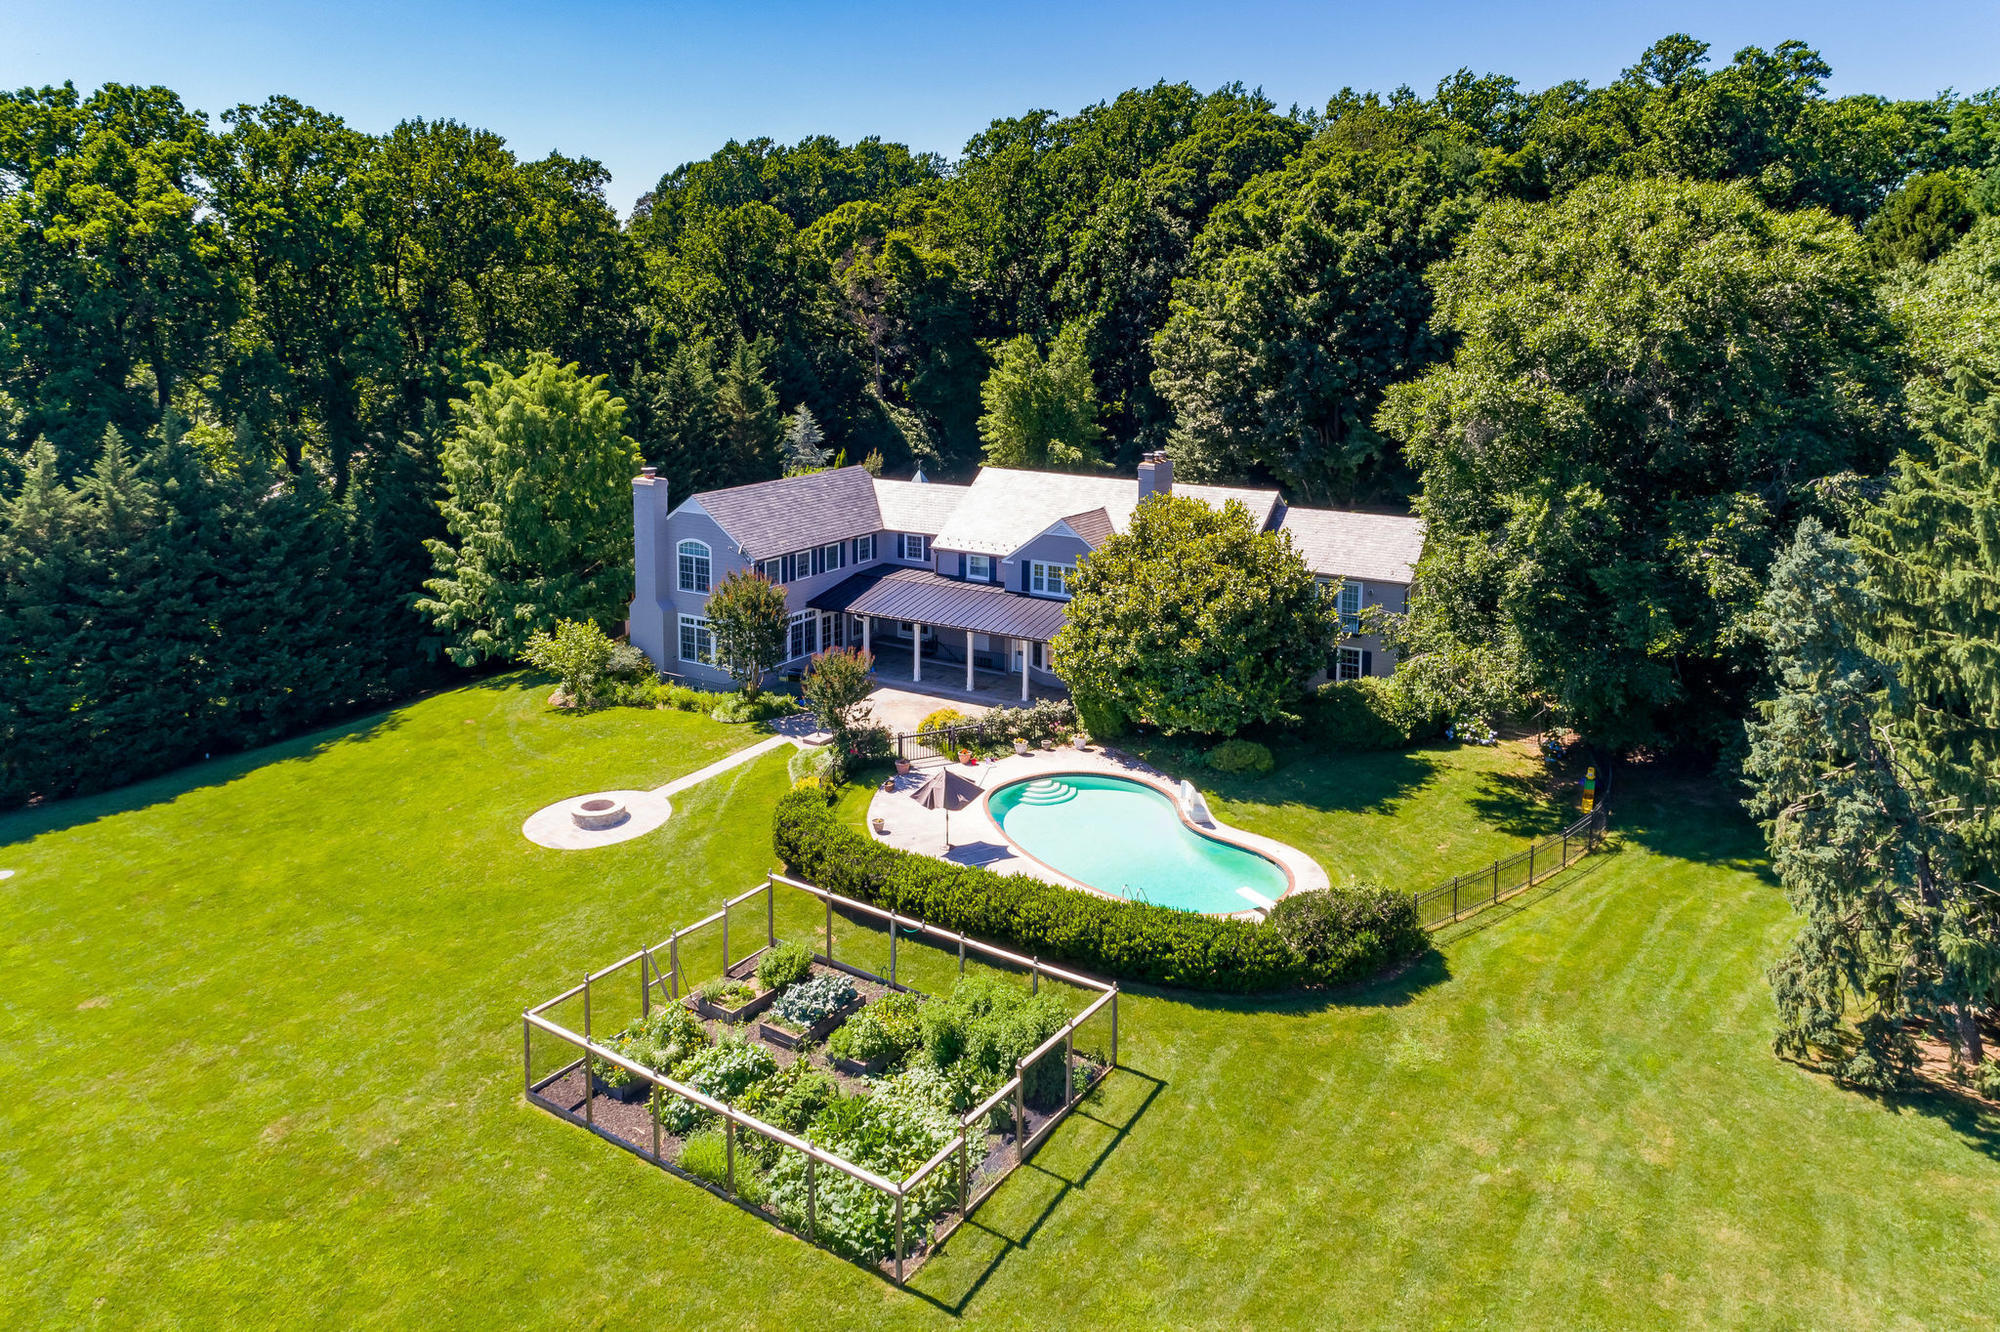 Orioles outfielder Adam Jones' Lutherville-Timonium house is up for sale | Baltimore Sun